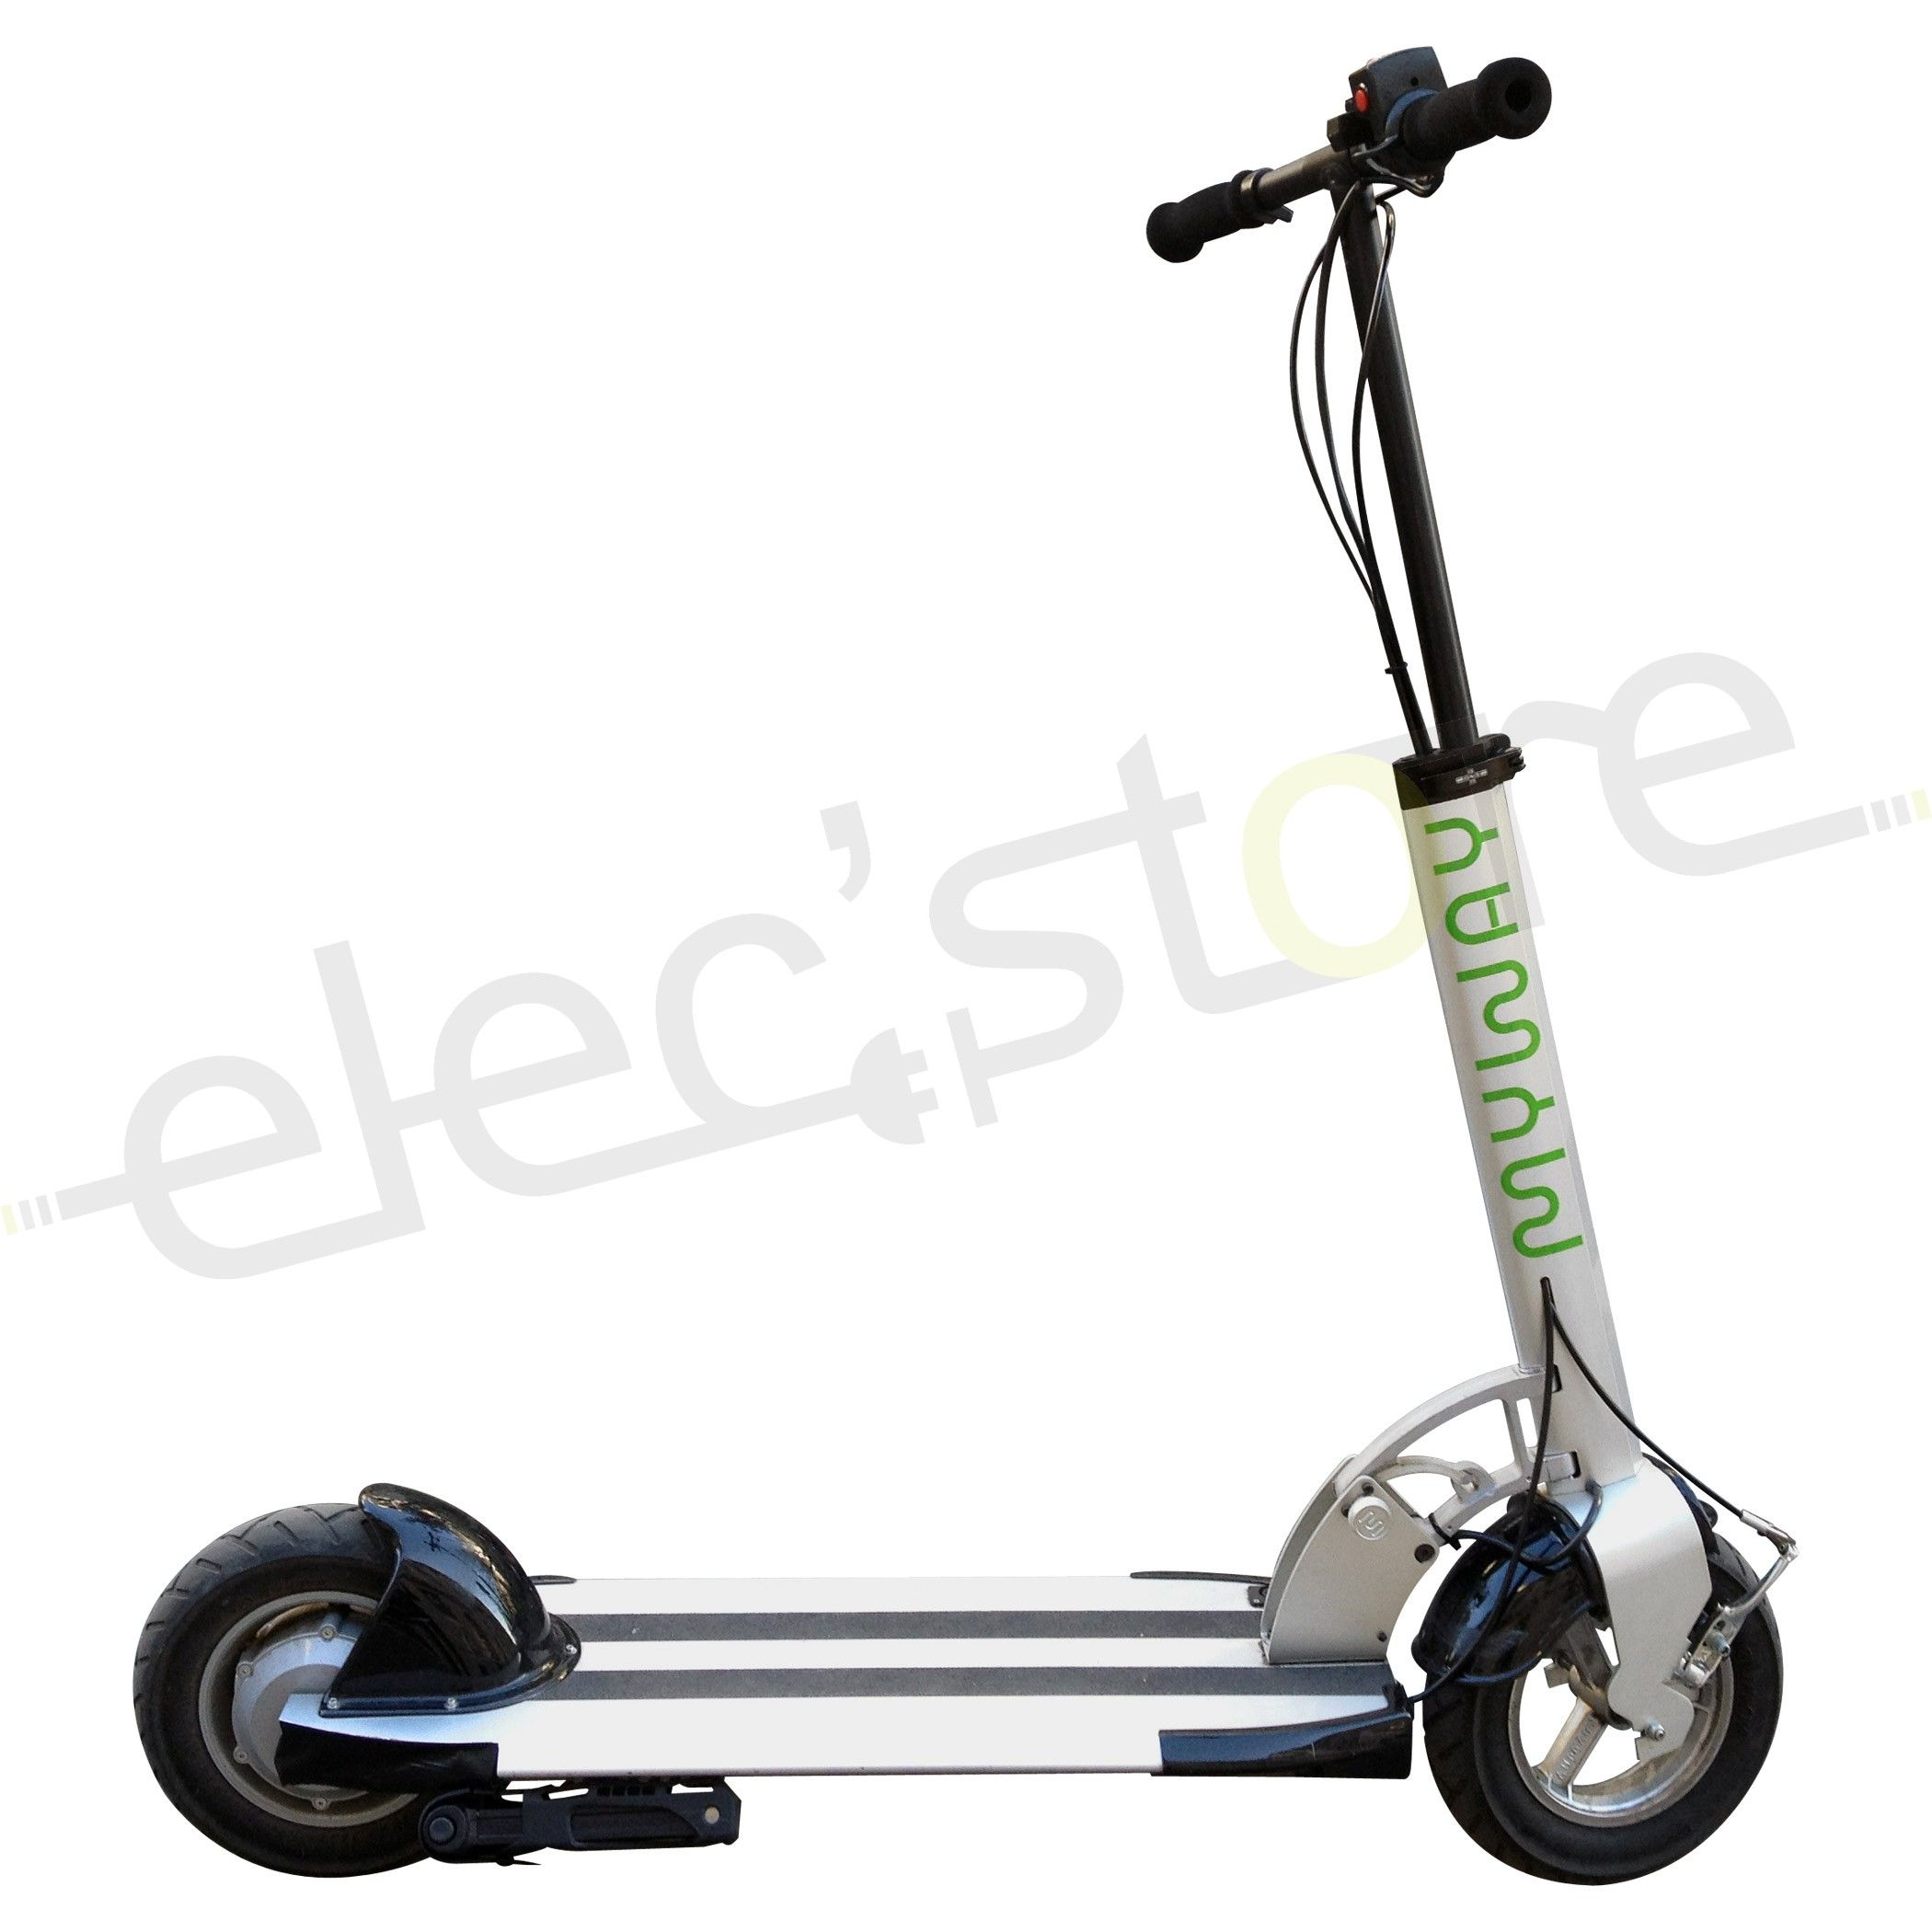 trottinette lectrique myway acheter sur elec 39 store gadgets pinterest scooters. Black Bedroom Furniture Sets. Home Design Ideas